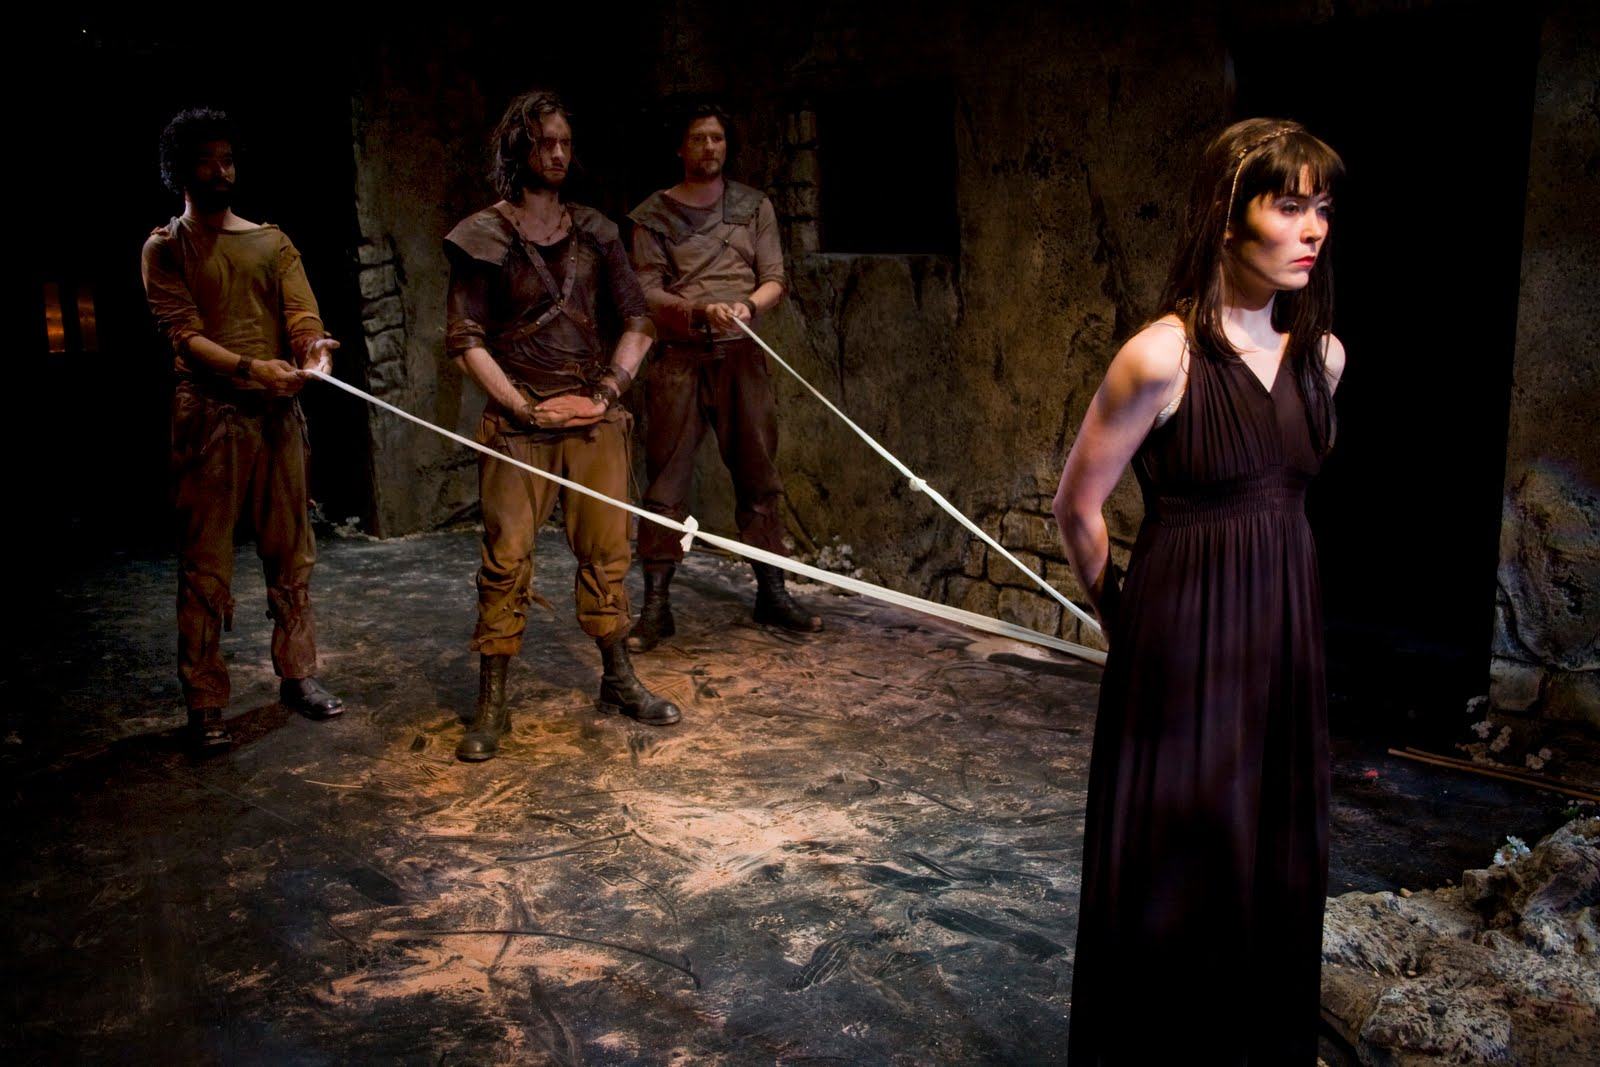 The strengths and weaknesses of creon and antigone